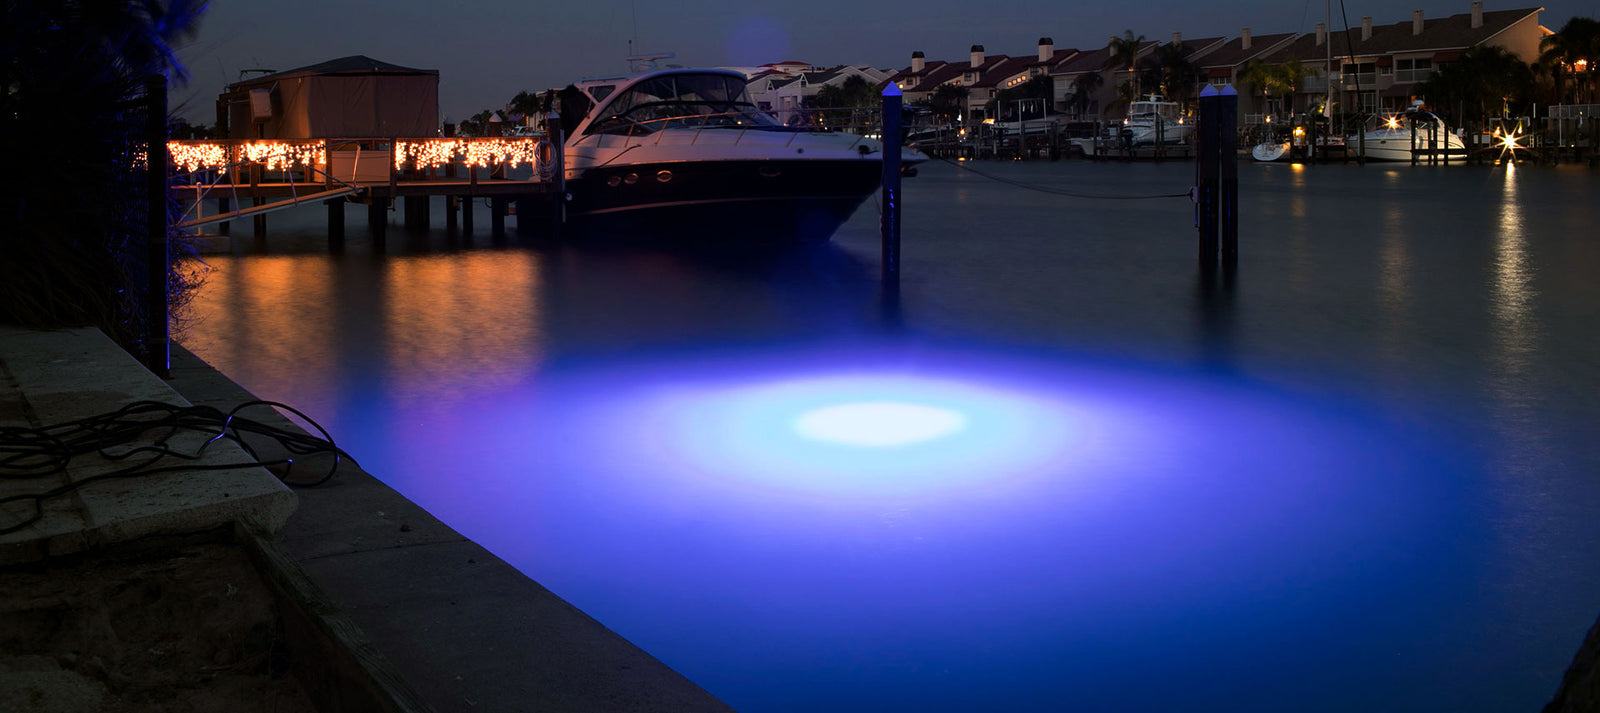 Underwater Blue Dock Light Illuminating a Boat during the night. Brightest LED Dock light available